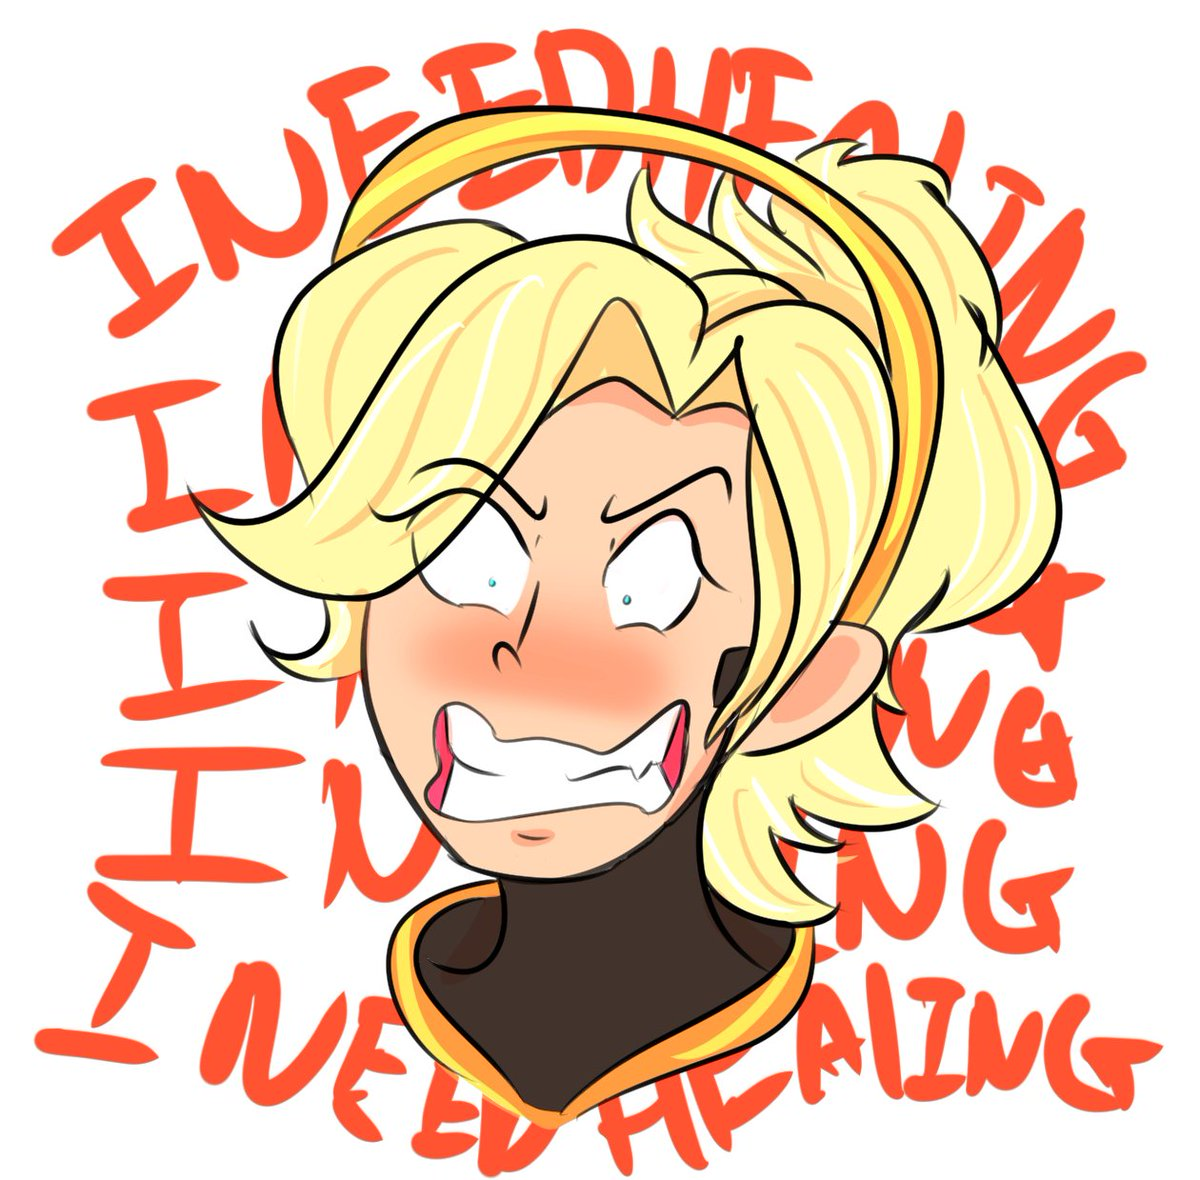 Mercy clipart overwatch clip art royalty free jo3mm on Twitter: